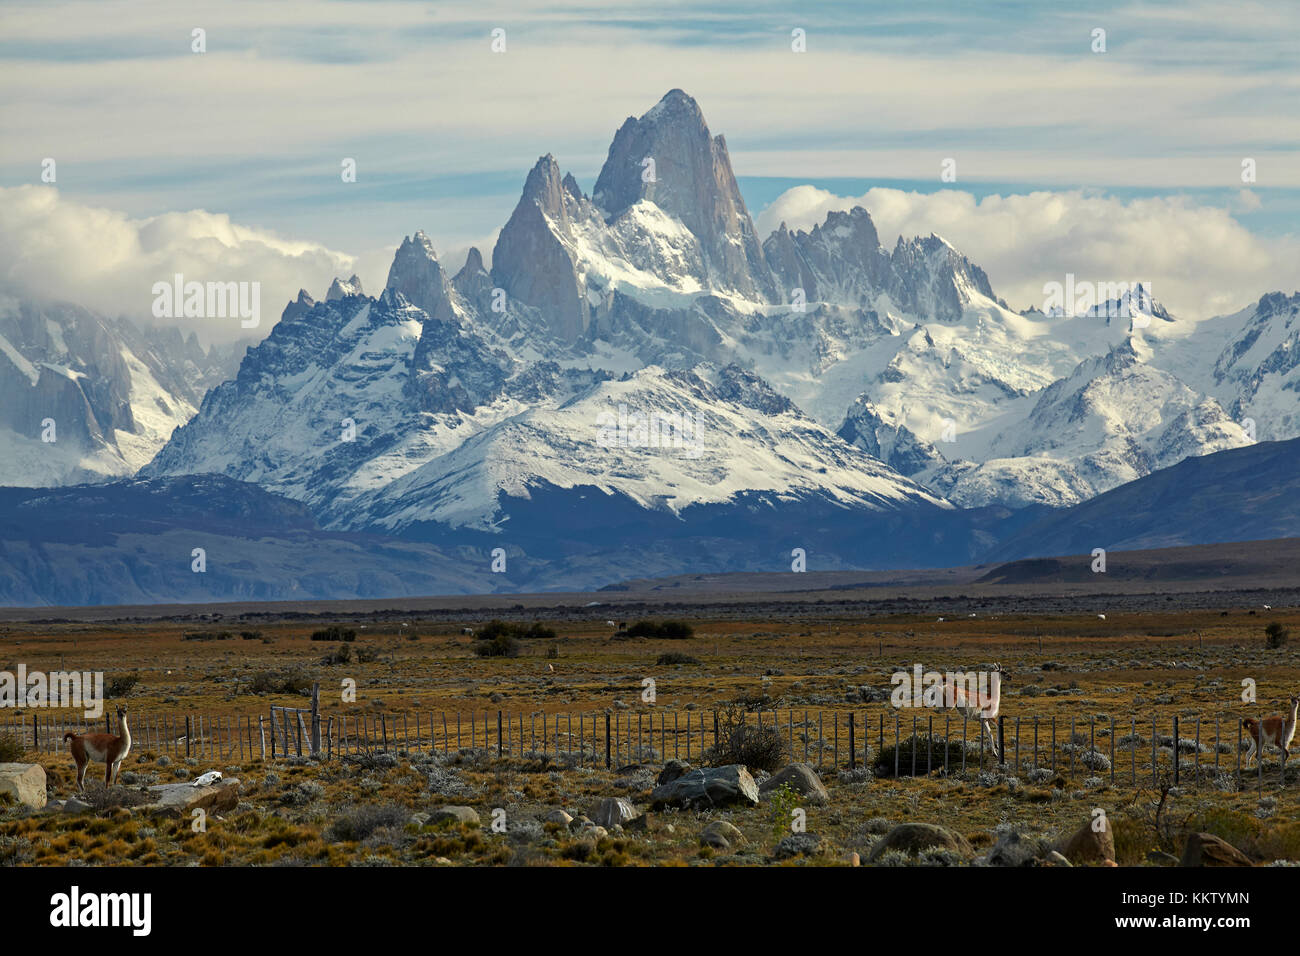 Mount Fitz Roy, Parque Nacional Los Glaciares (World Heritage Area), and guanacos jumping fence, Patagonia, Argentina, - Stock Image